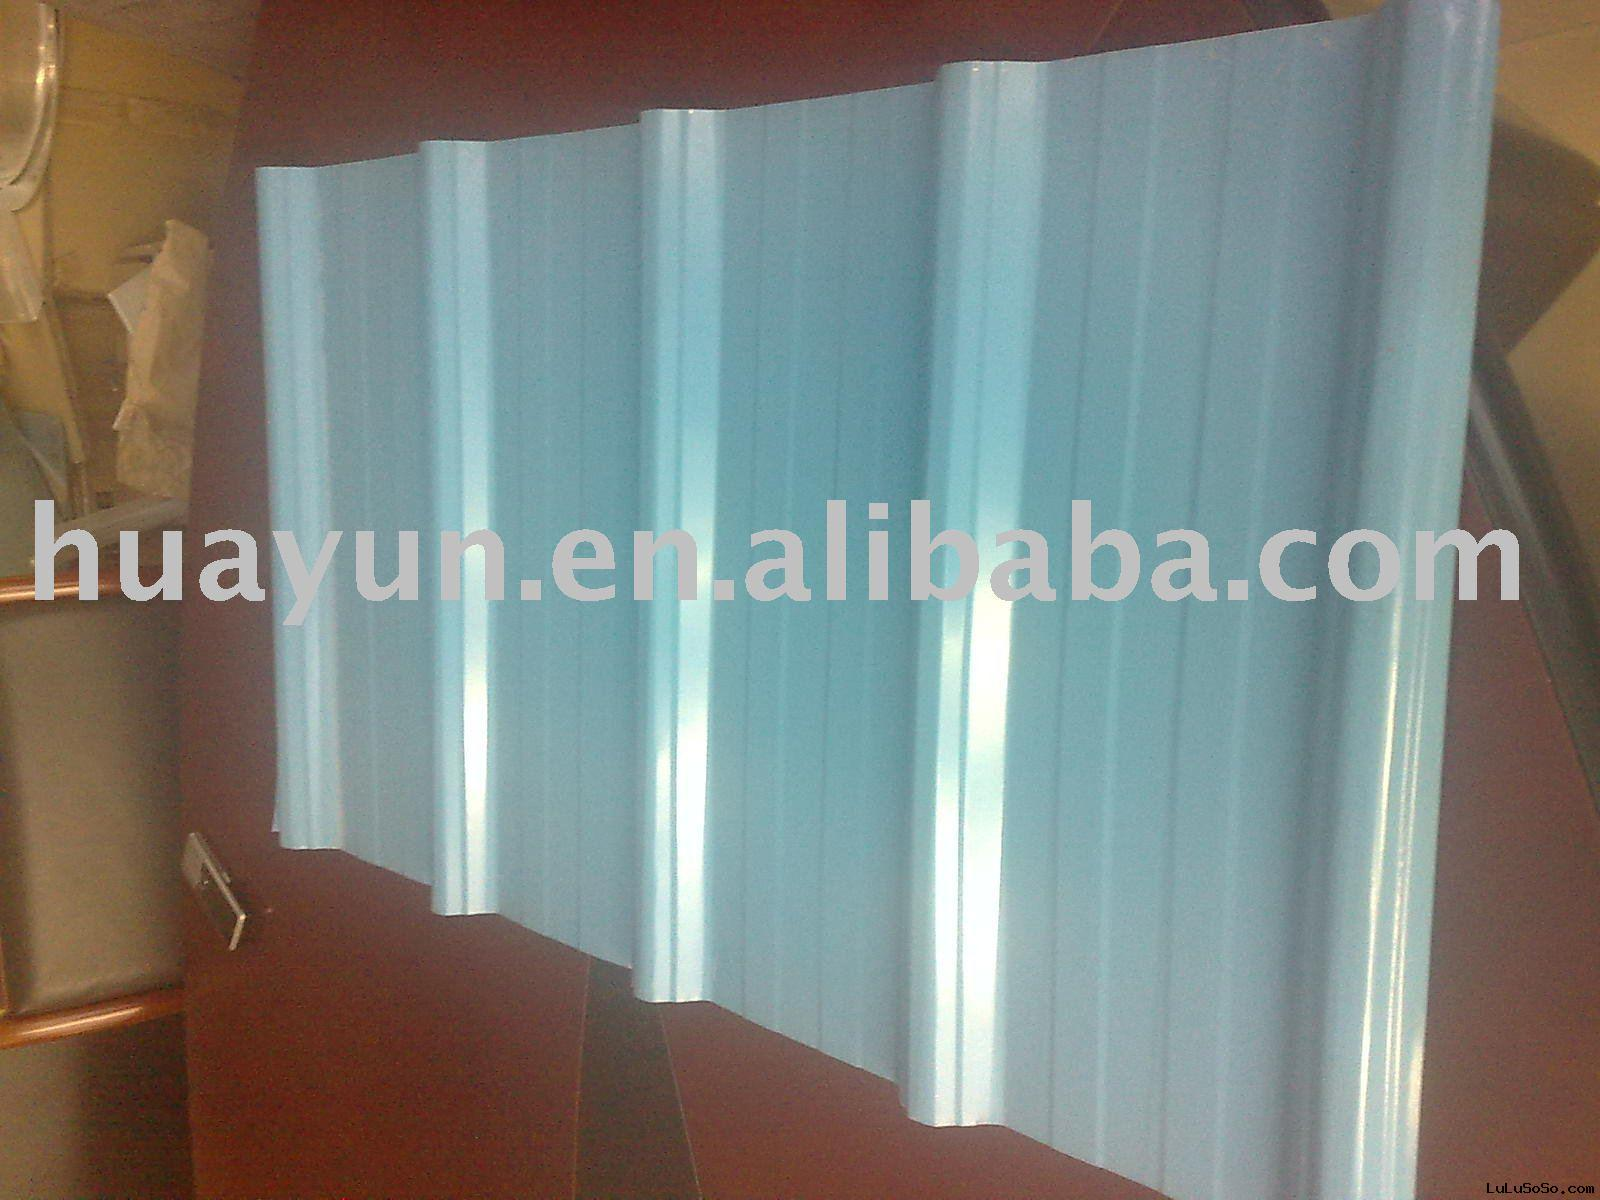 Aluminium Sheet for Ceiling